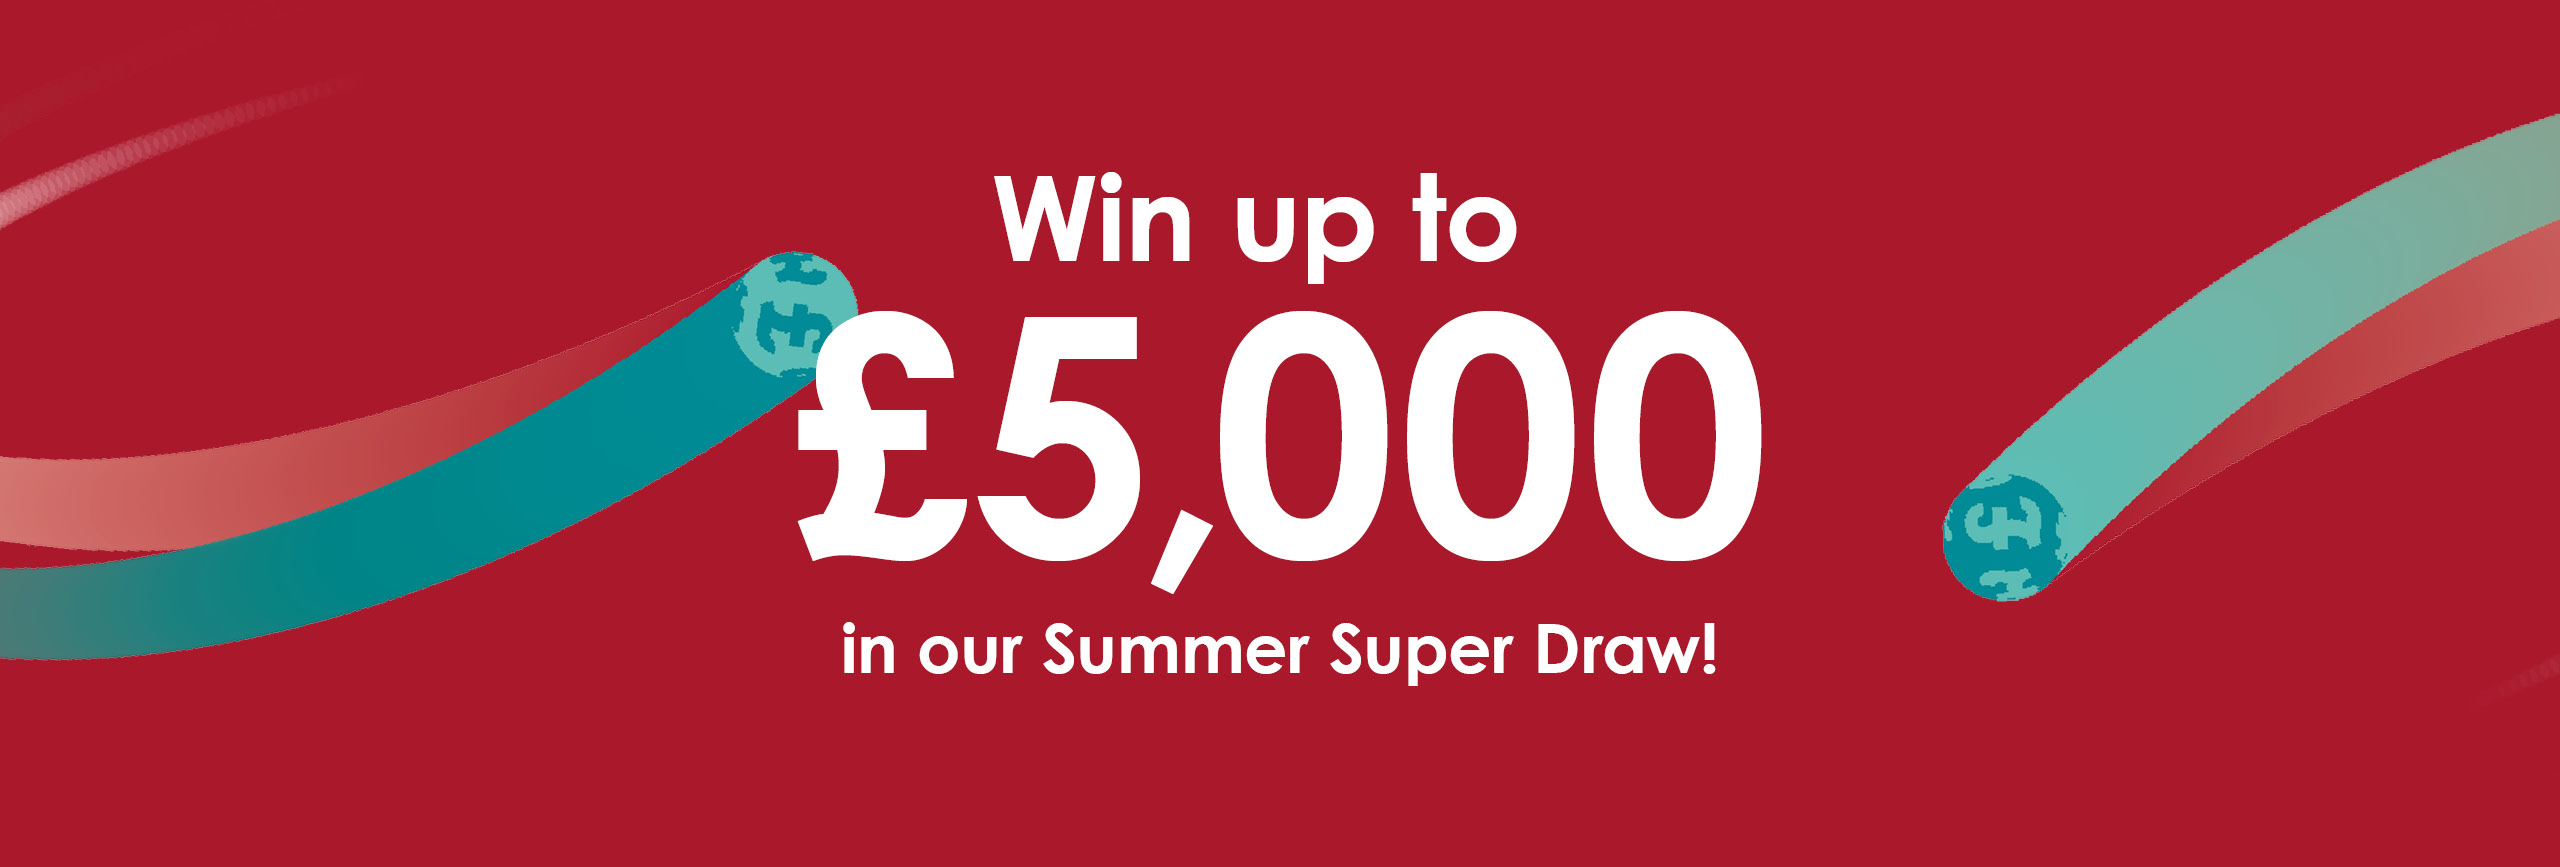 The Myton Hospices - Summer Super Draw 2019 Flex Slider Lottery Raffle Win